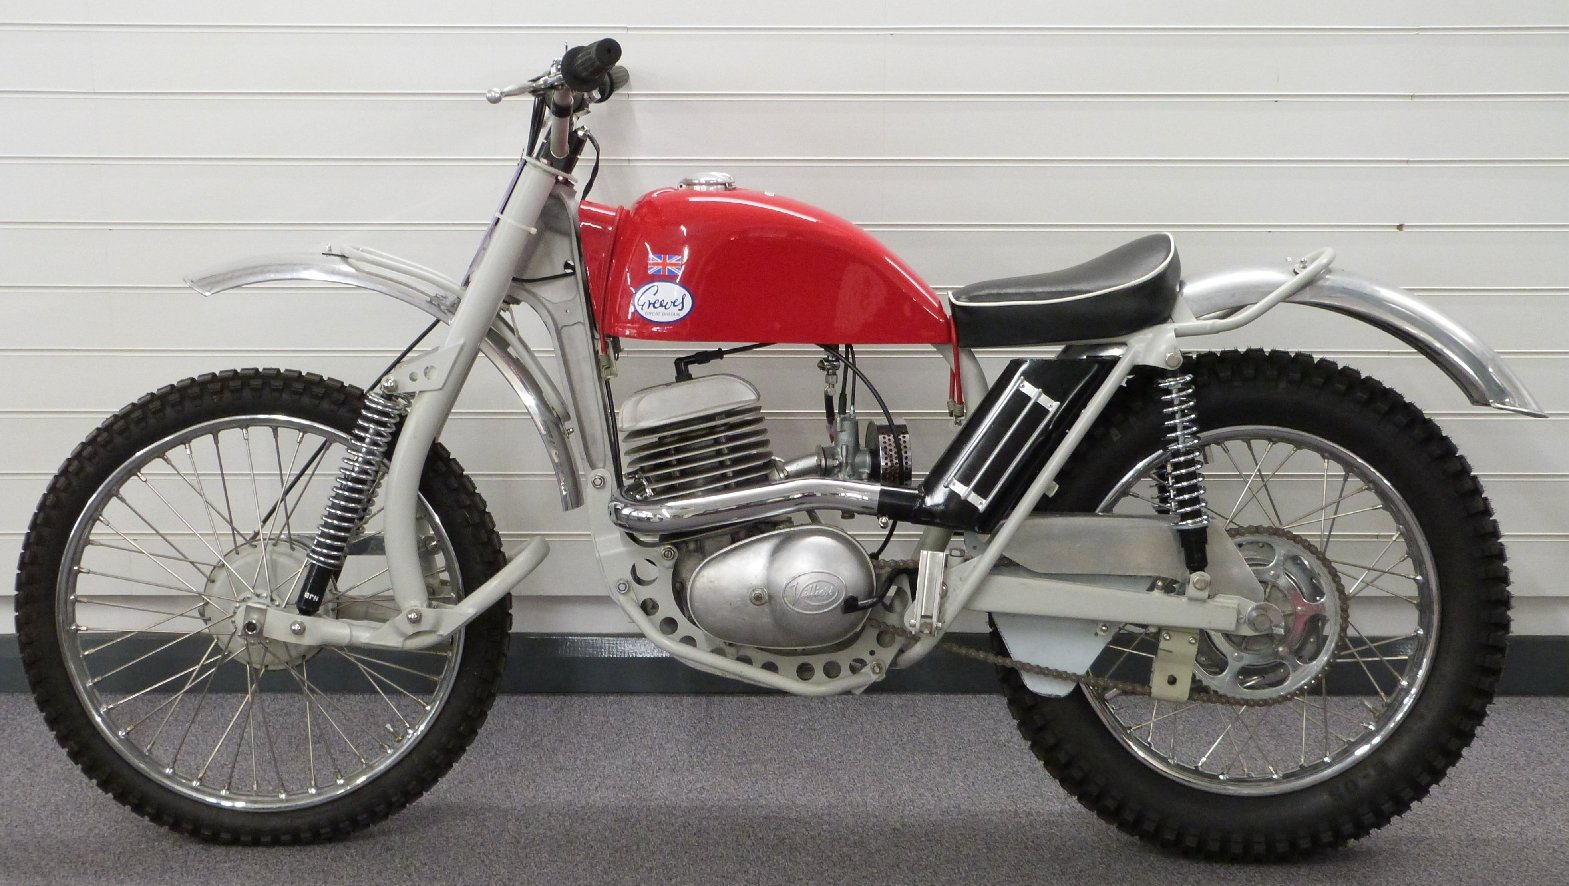 1967 Greeves 250cc trials bike For Sale by Auction (picture 2 of 6)